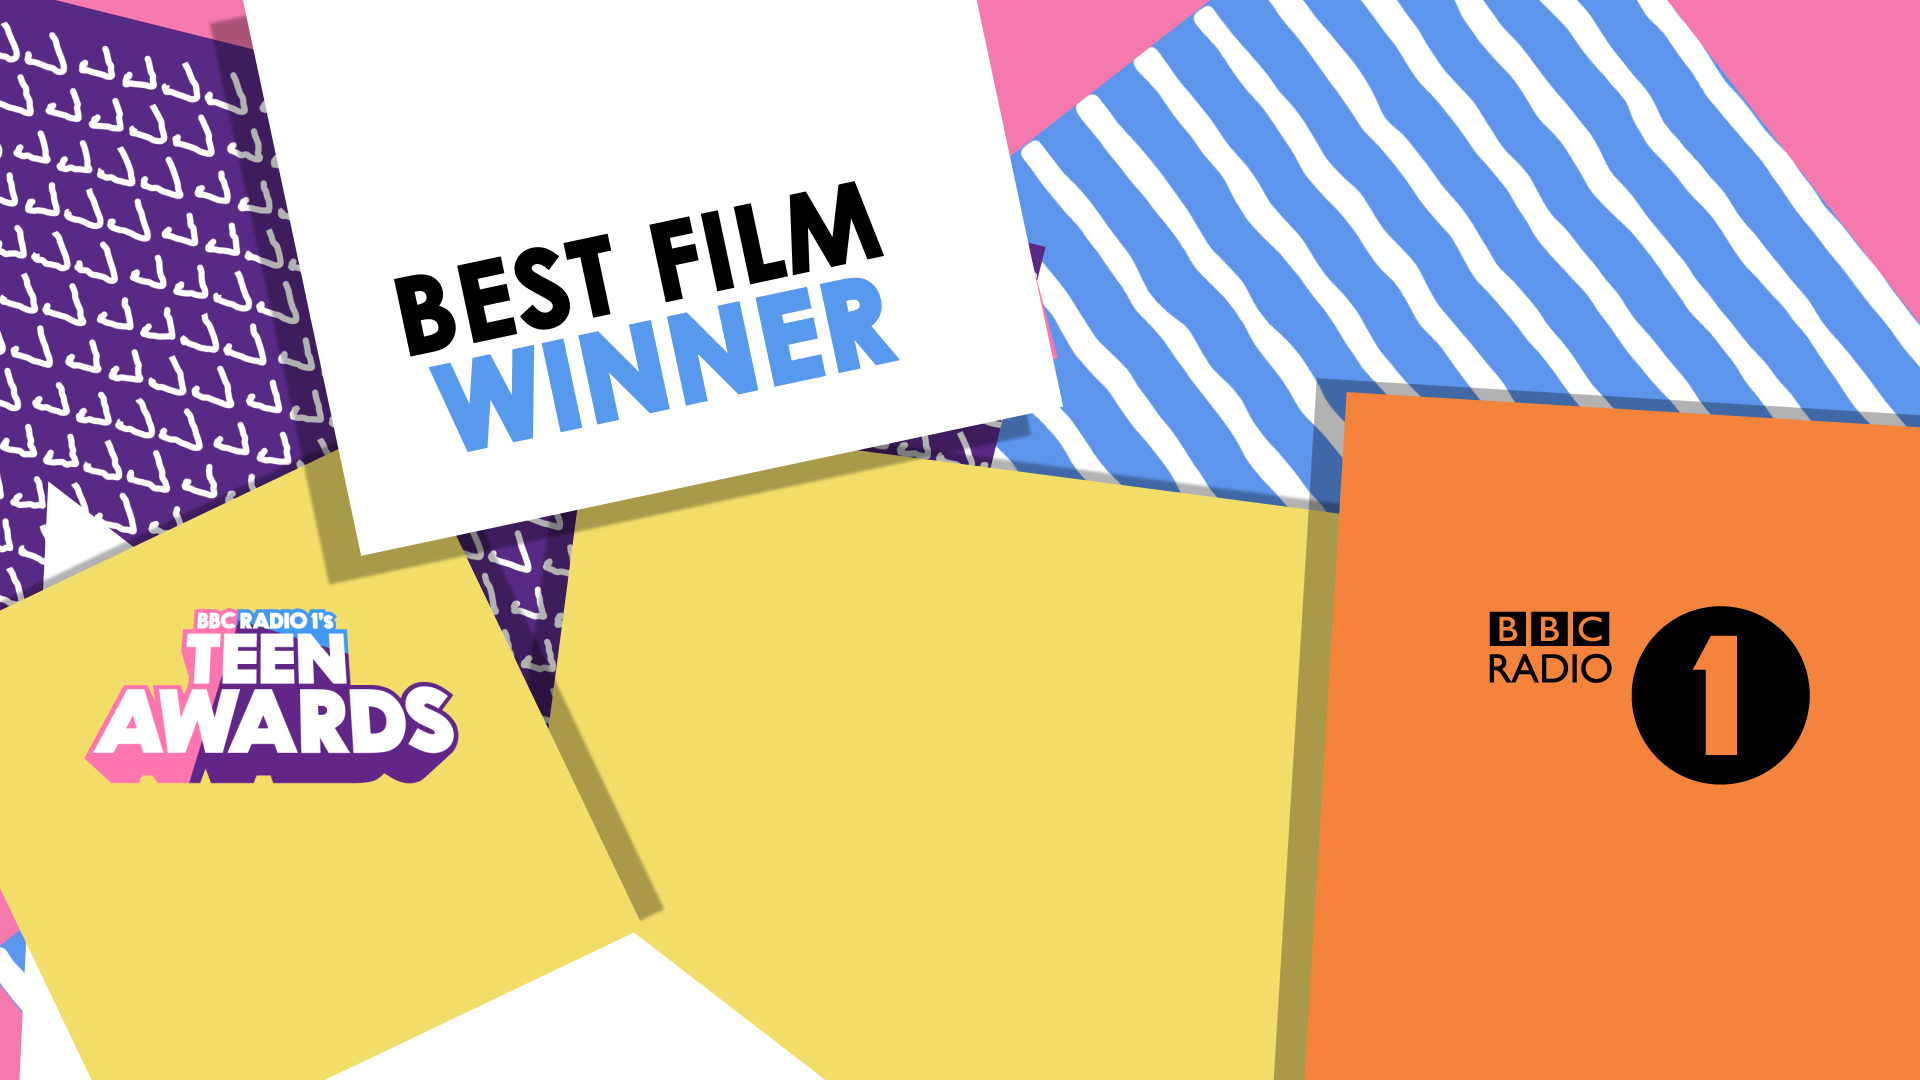 R1_TA_DS_BEST_FILM_WINNER (0-00-03-03).png